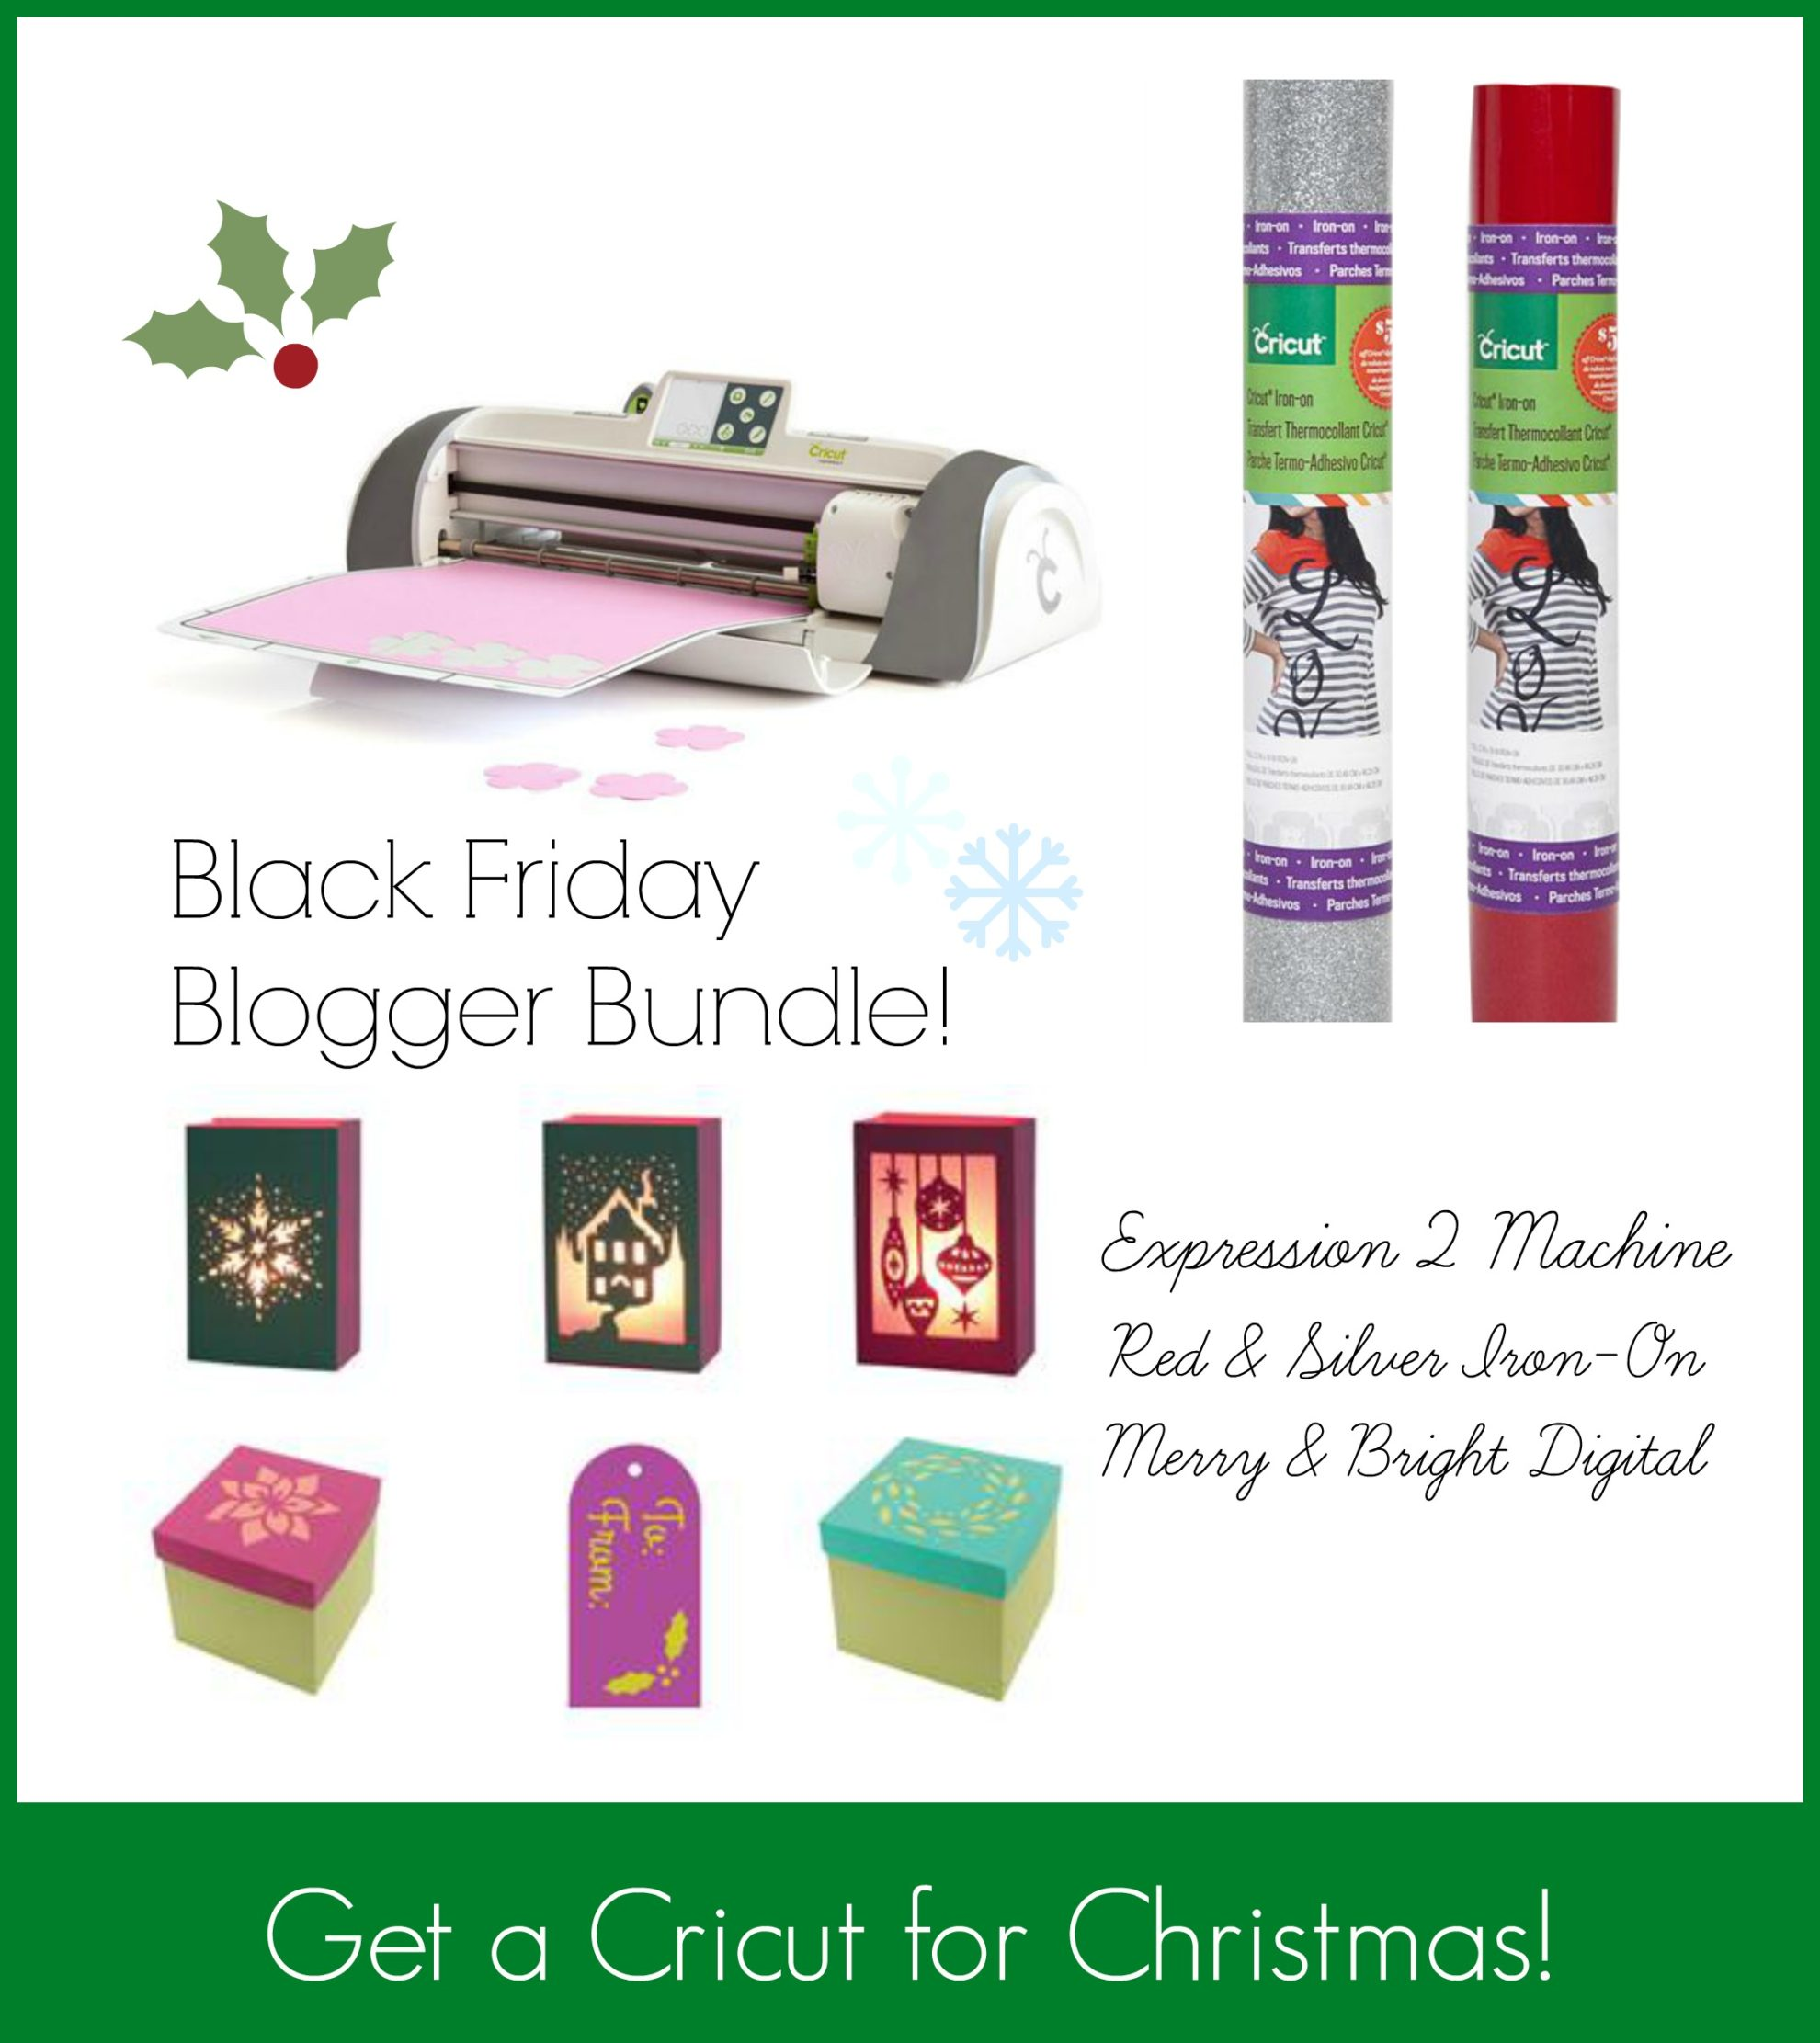 Cricut Black Friday Blogger Bundle from SewWOodsy.com